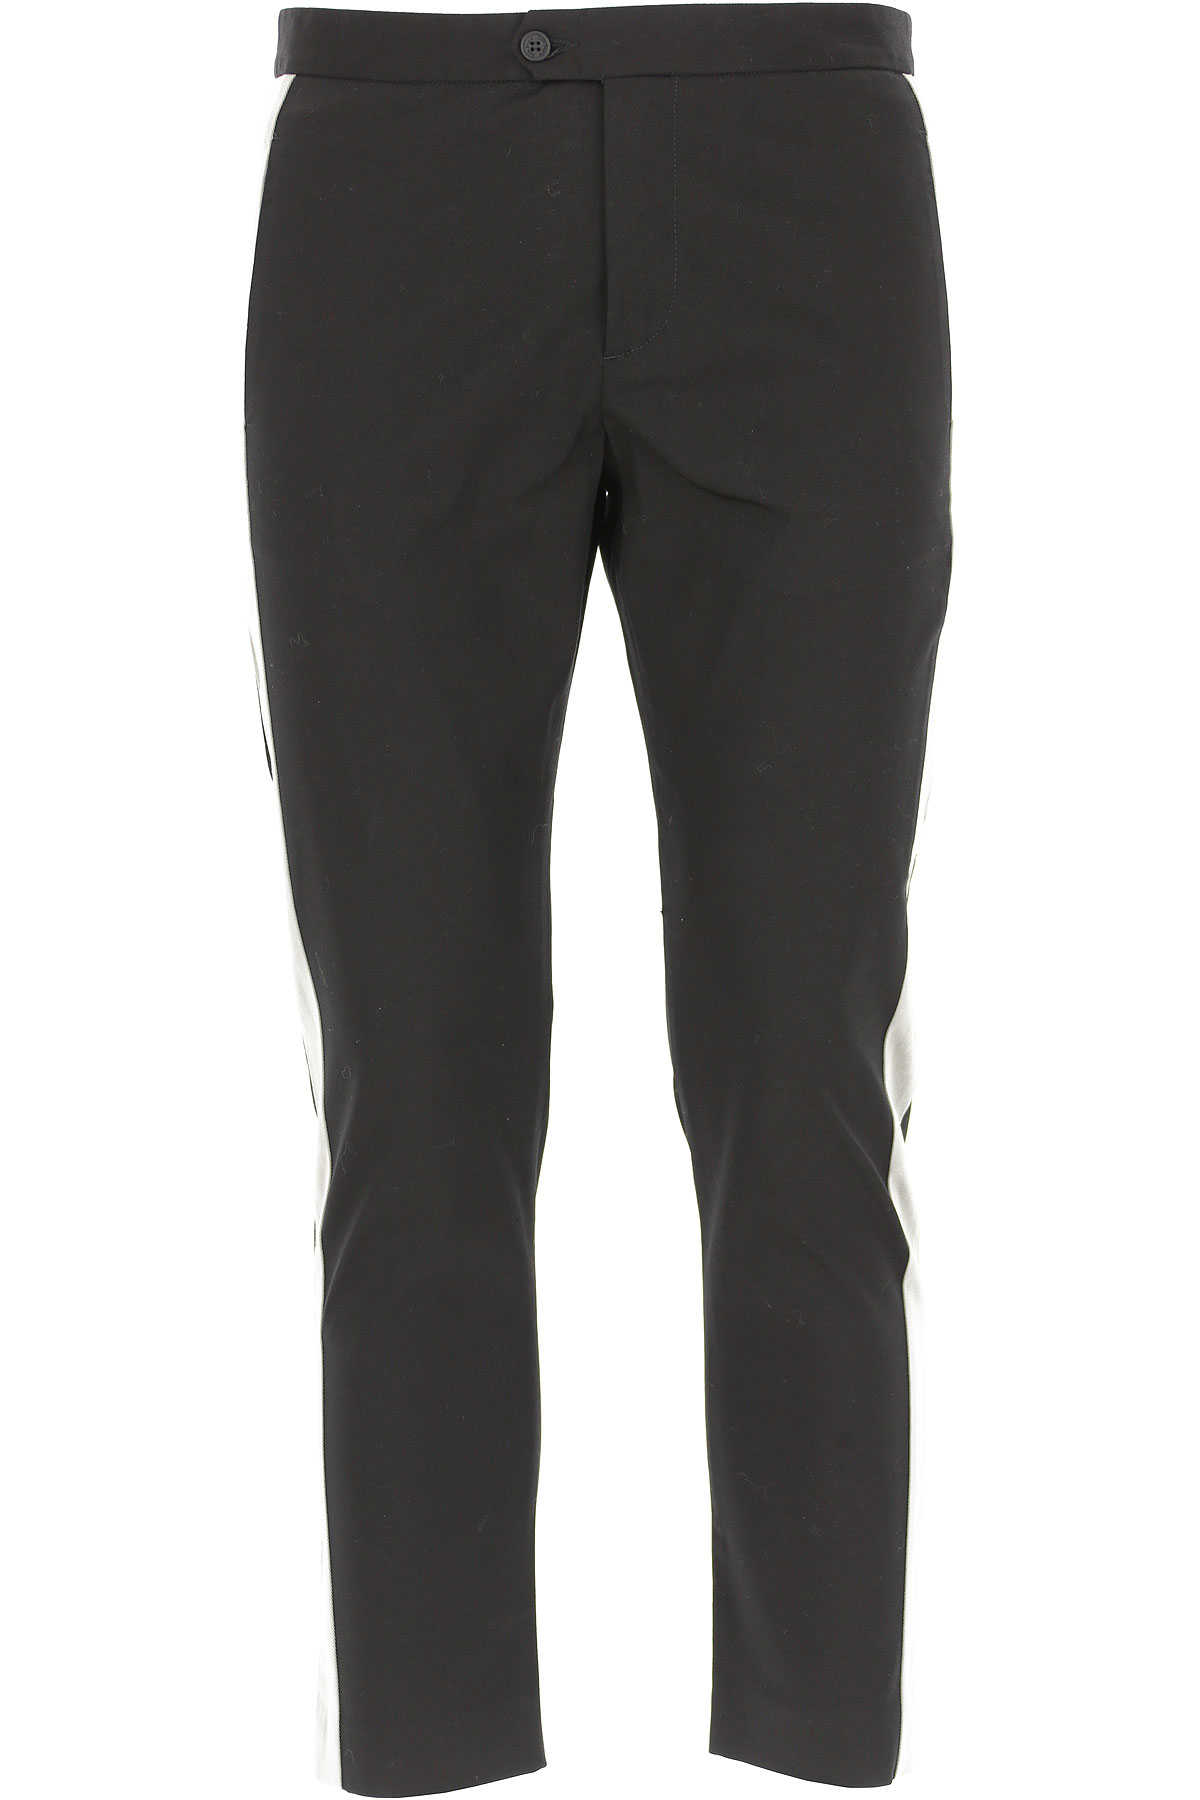 Palm Angels Pants for Men in Outlet Black USA - GOOFASH